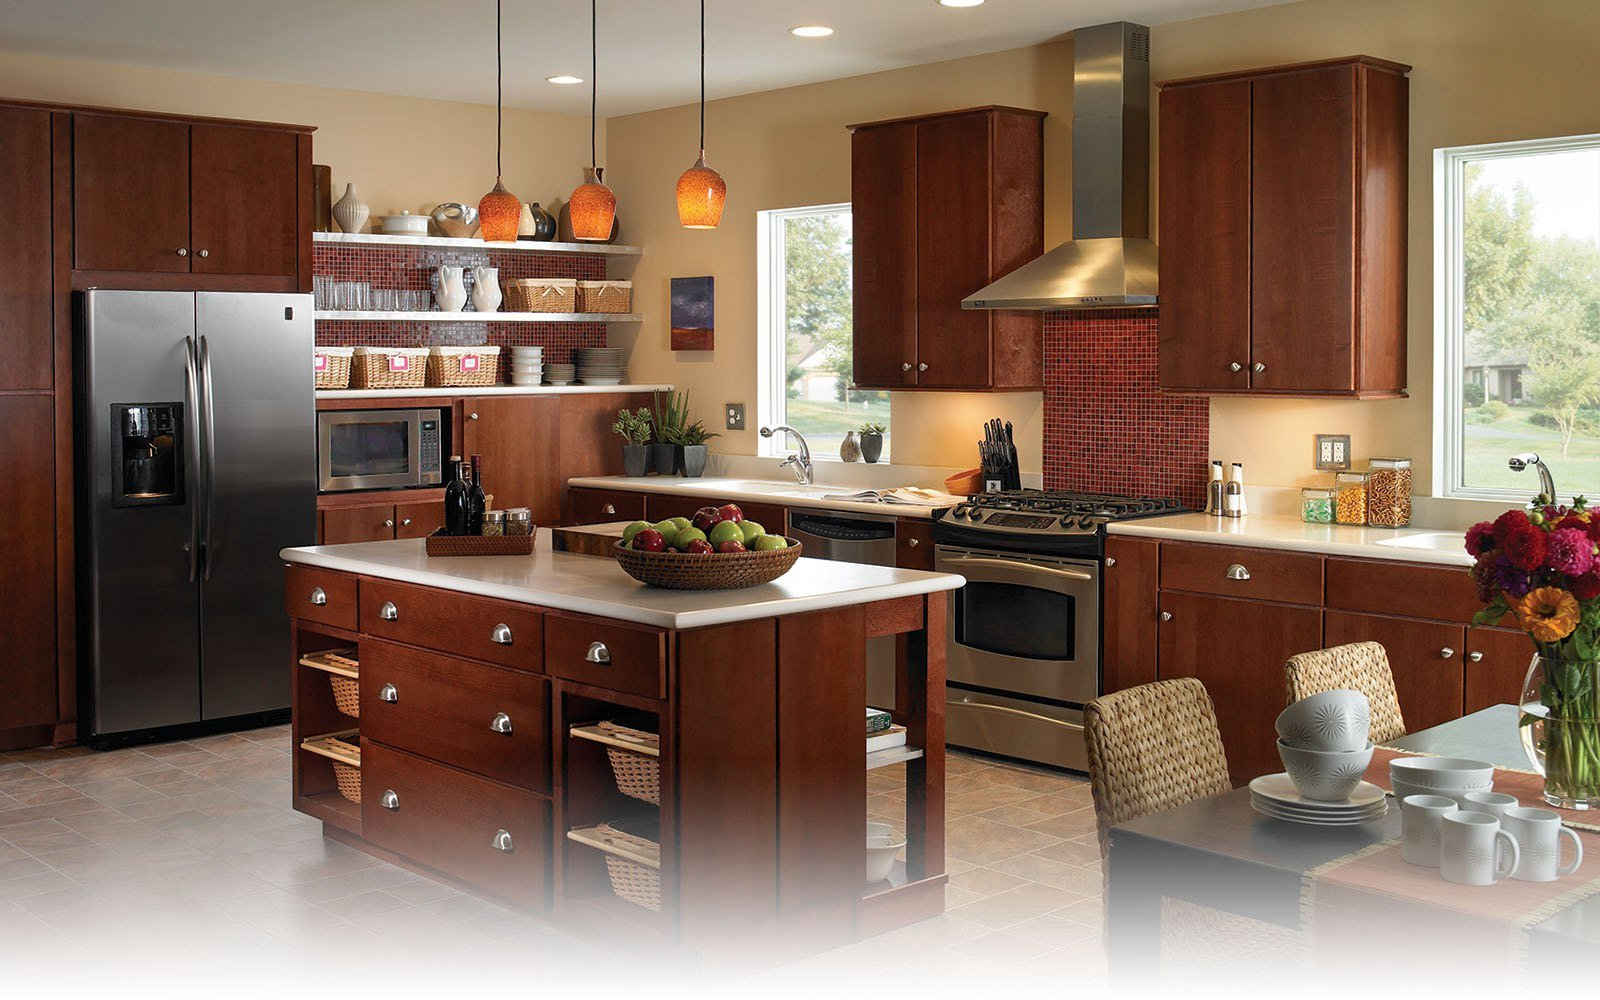 Kitchen And Bath Remodeling kitchen and bath cabinets, design and remodeling - norfolk kitchen